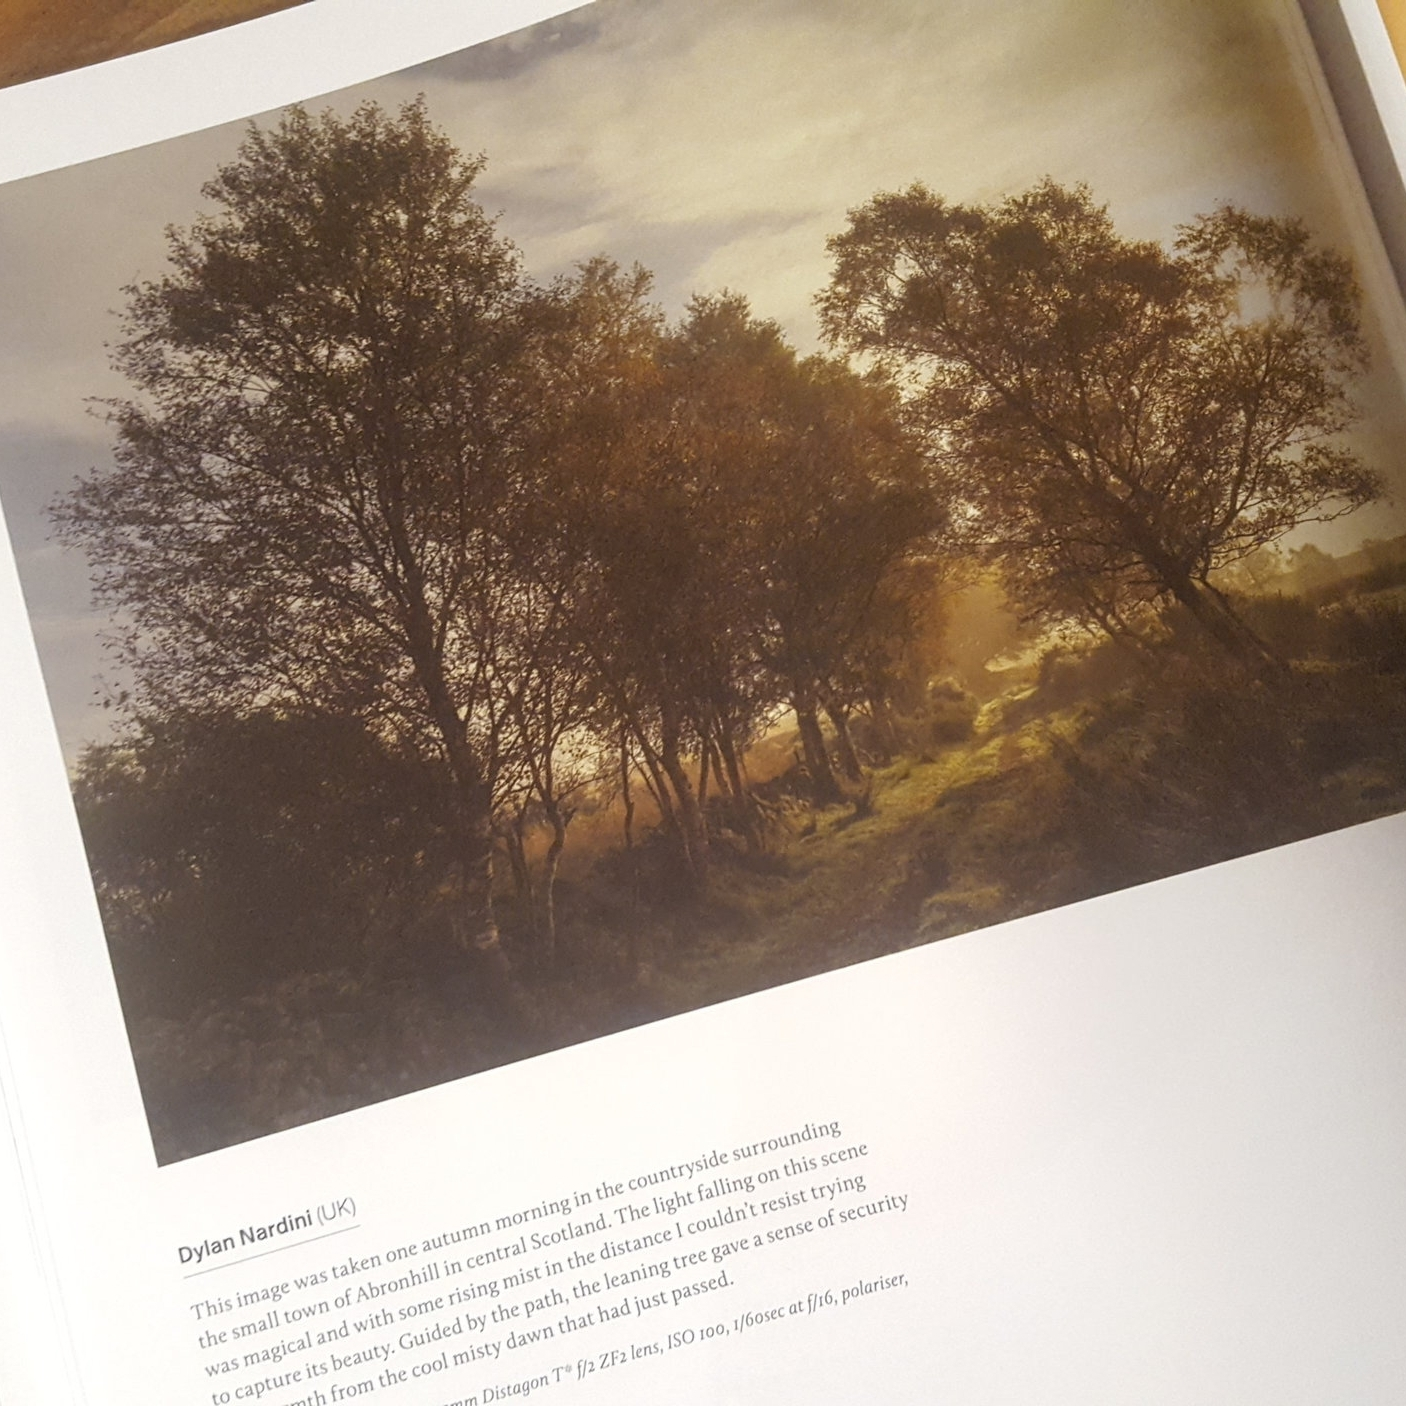 My Image in OPOTY 1